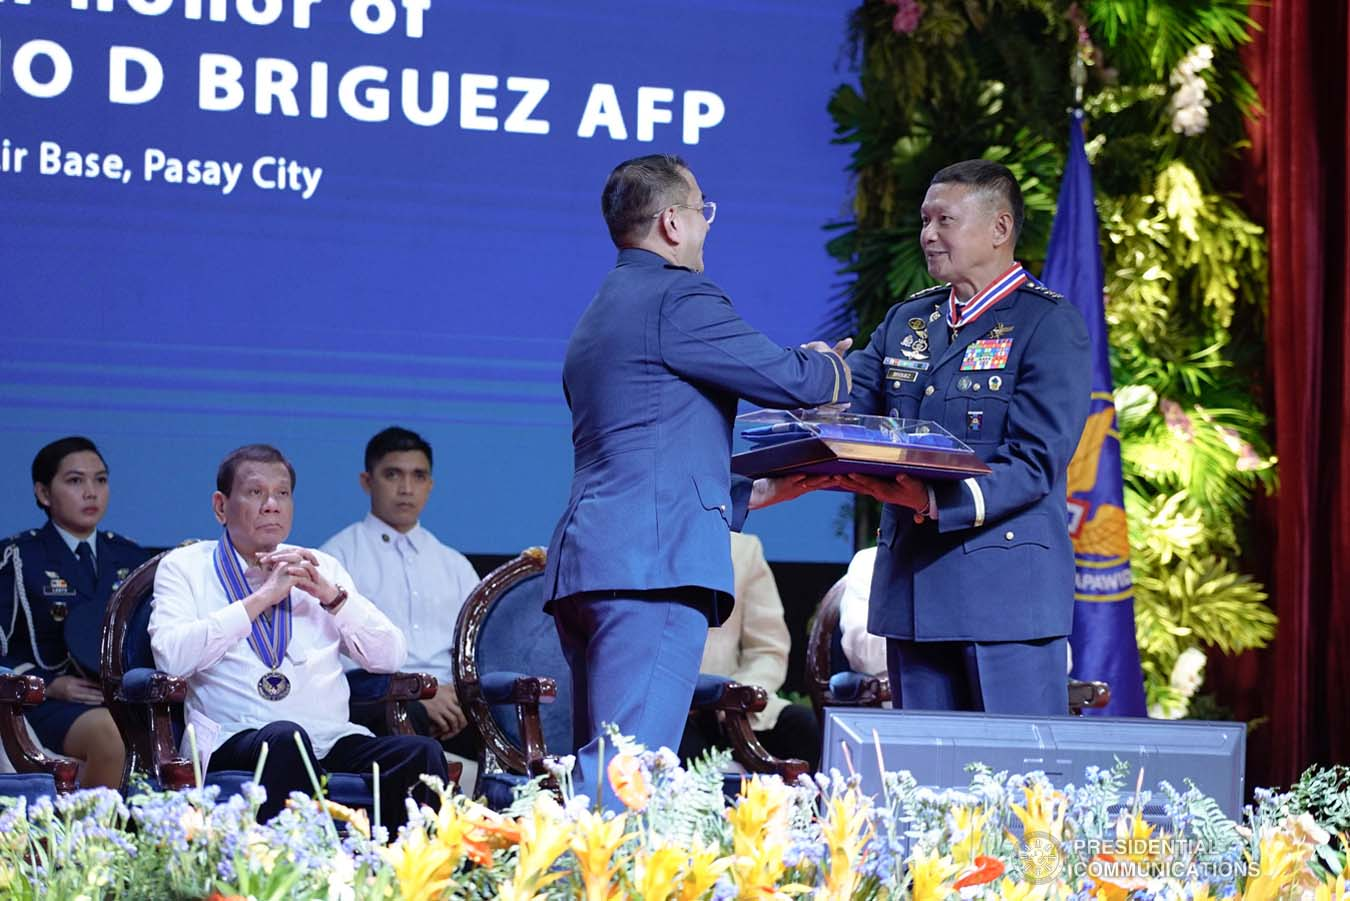 President Rodrigo Roa Duterte looks on as outgoing Philippine Air Force (PAF) Commanding General Lieutenant General Rozzano Briguez receives a command memento from incoming PAF Commanding General Major General Allen Paredes during the PAF Change of Command ceremony at the Col. Jesus Villamor Air Base in Pasay City on January 16, 2020. KING RODRIGUEZ/PRESIDENTIAL PHOTO